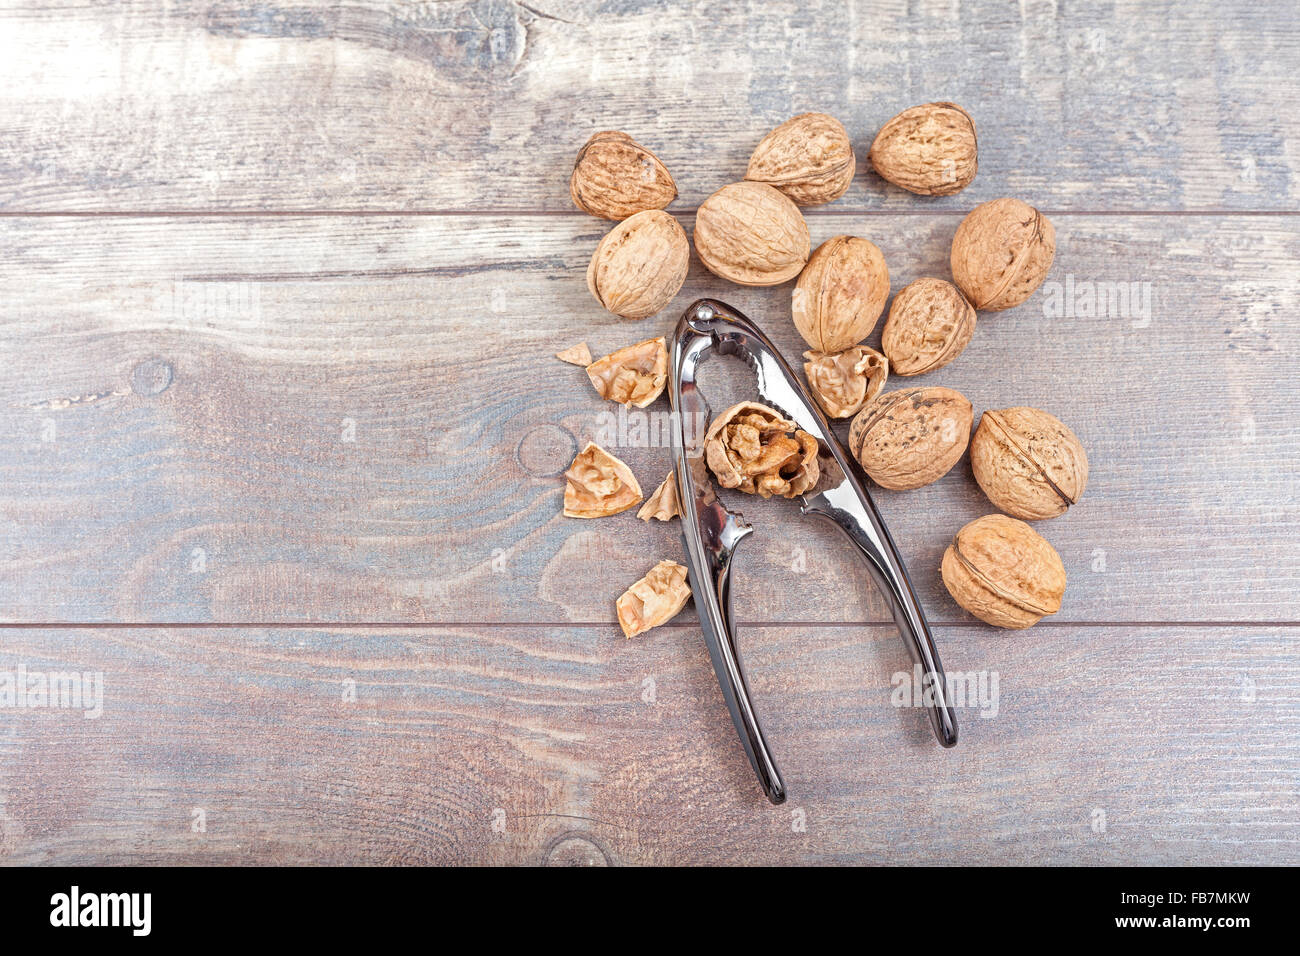 Walnuts and nutcracker on wooden background, space for text. - Stock Image